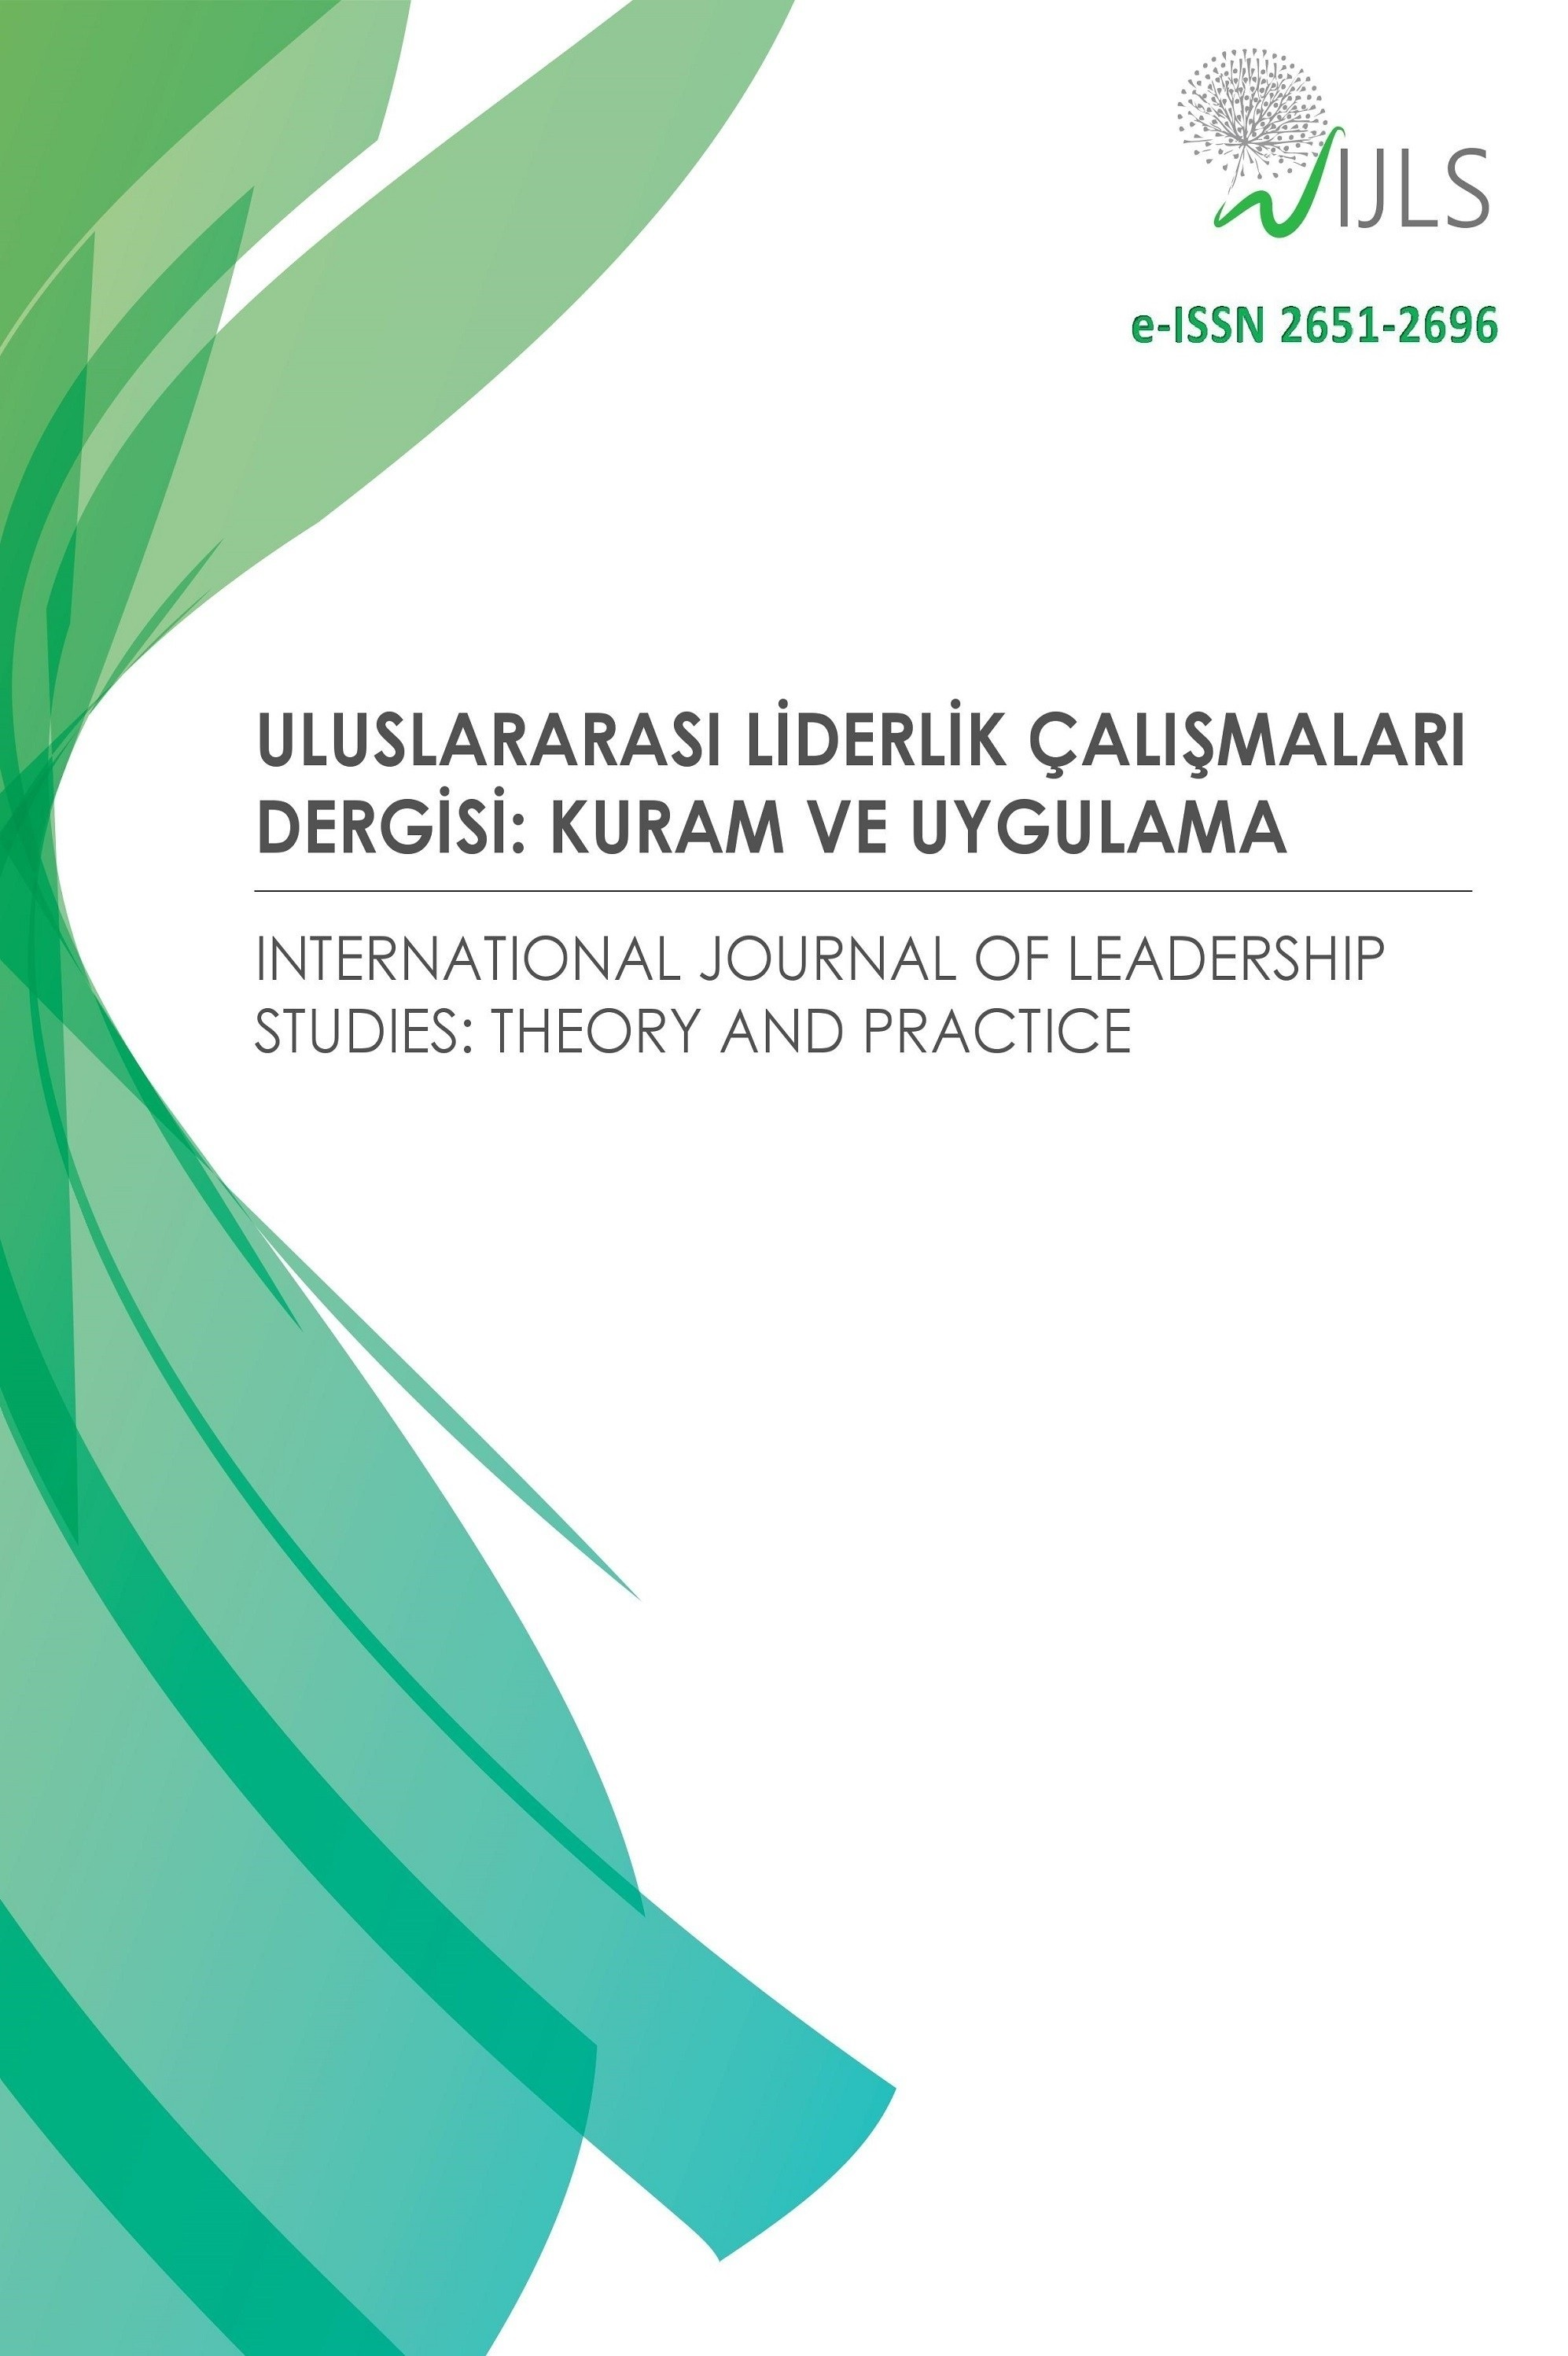 International  Journal of  Leadership Studies  : Theory and Practice